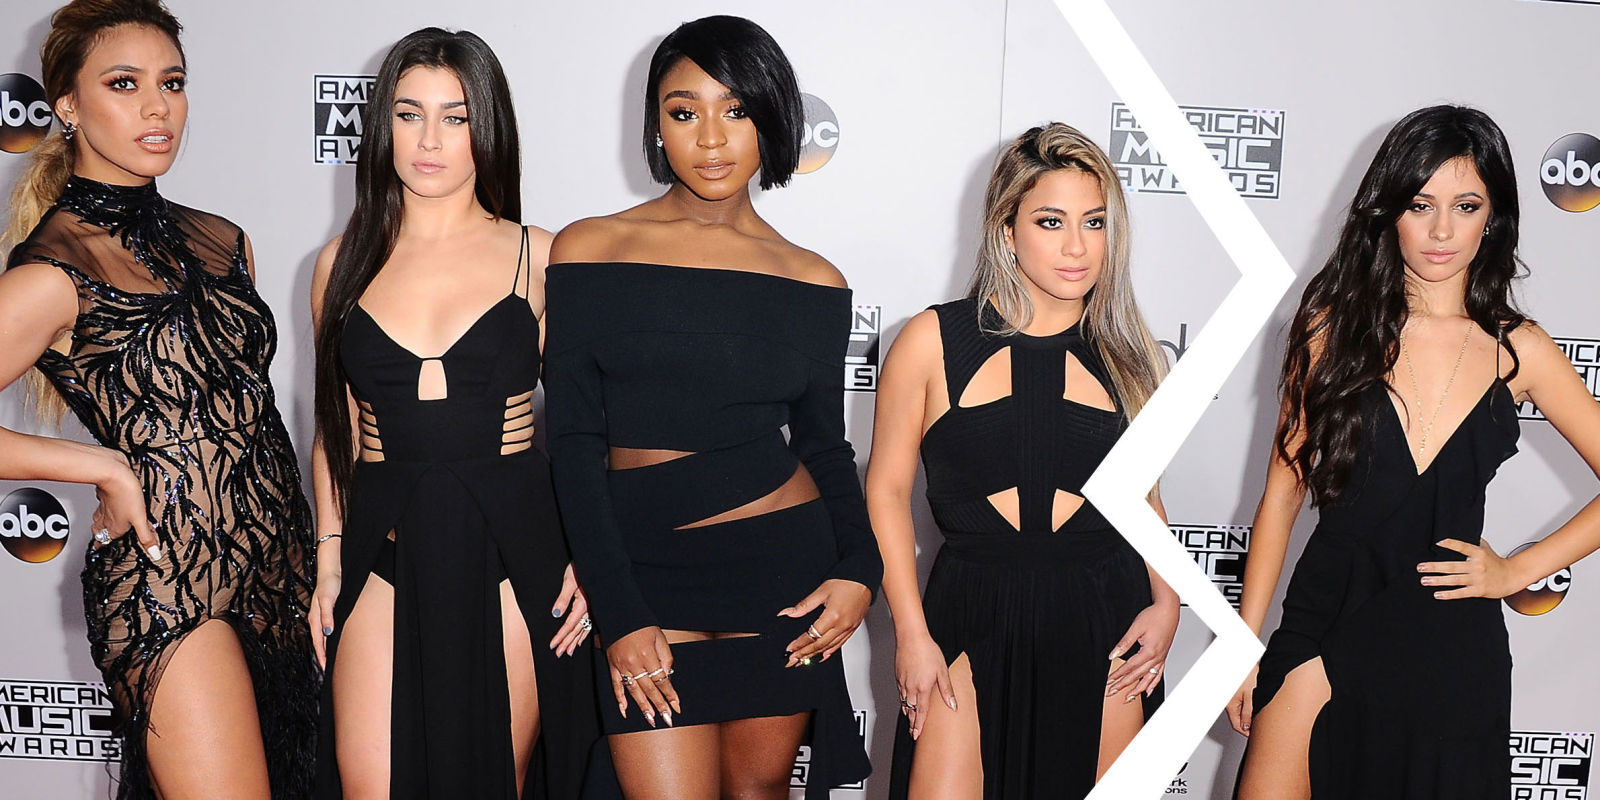 Camila Cabello unfollows Fifth Harmony on social media